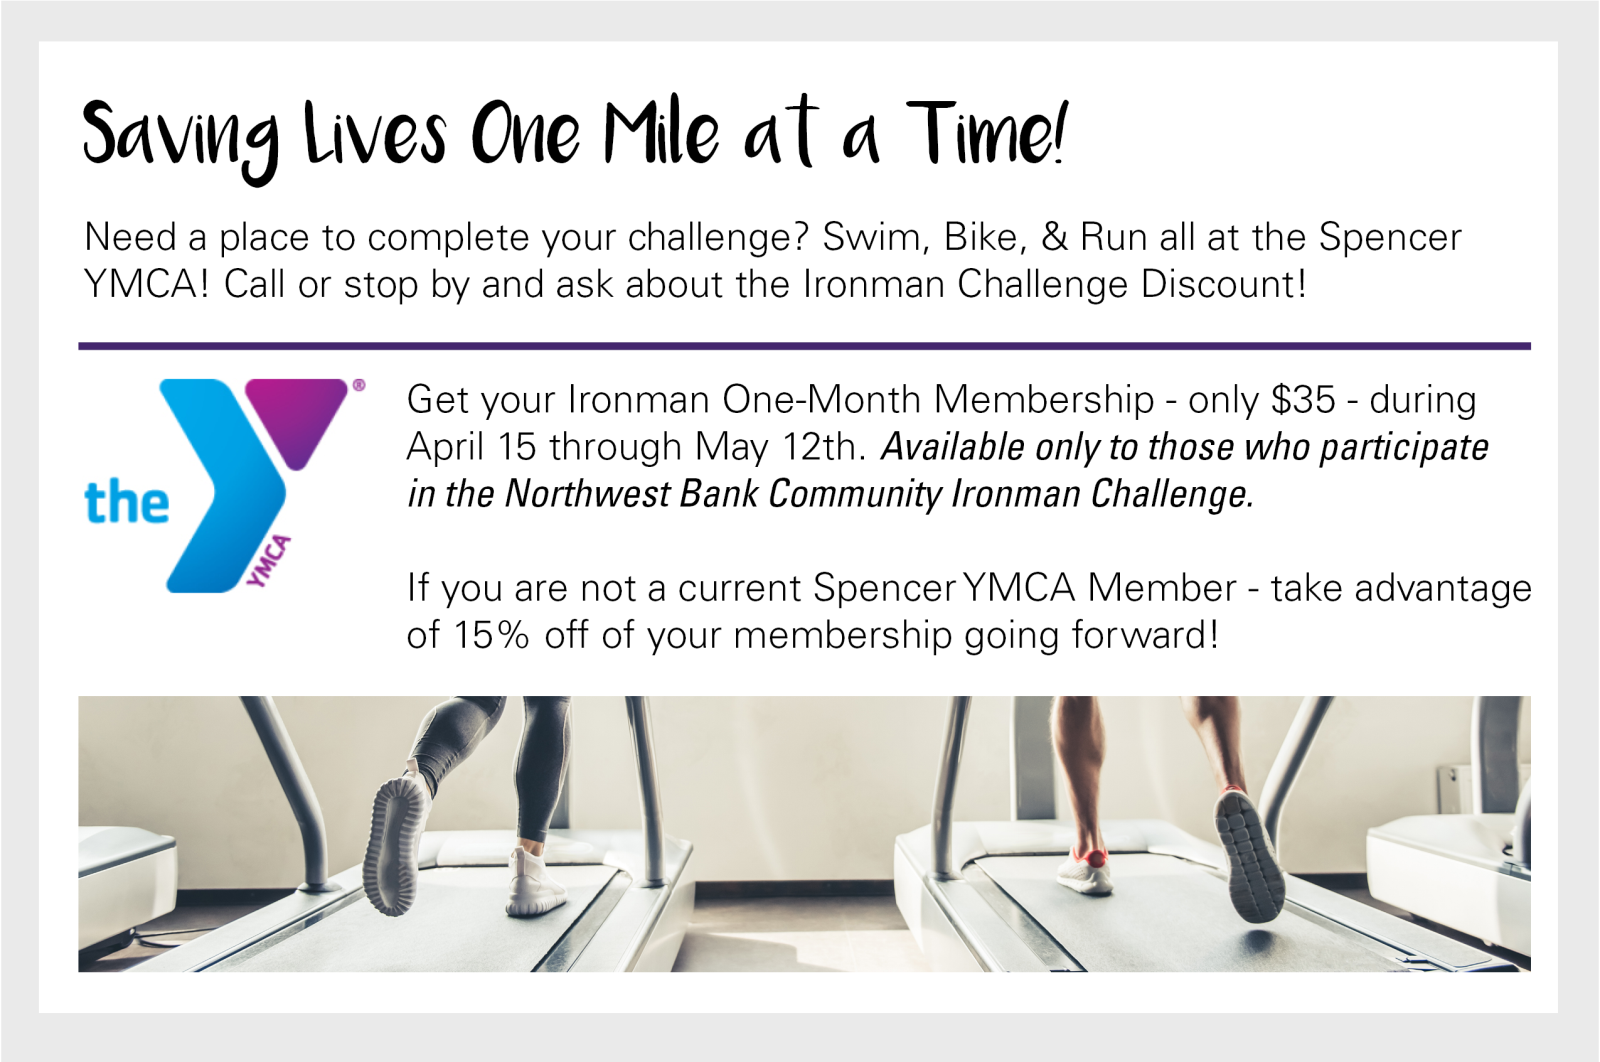 Call or stop by the spencer family YMCA and ask about the Ironman Challenge membership discount!